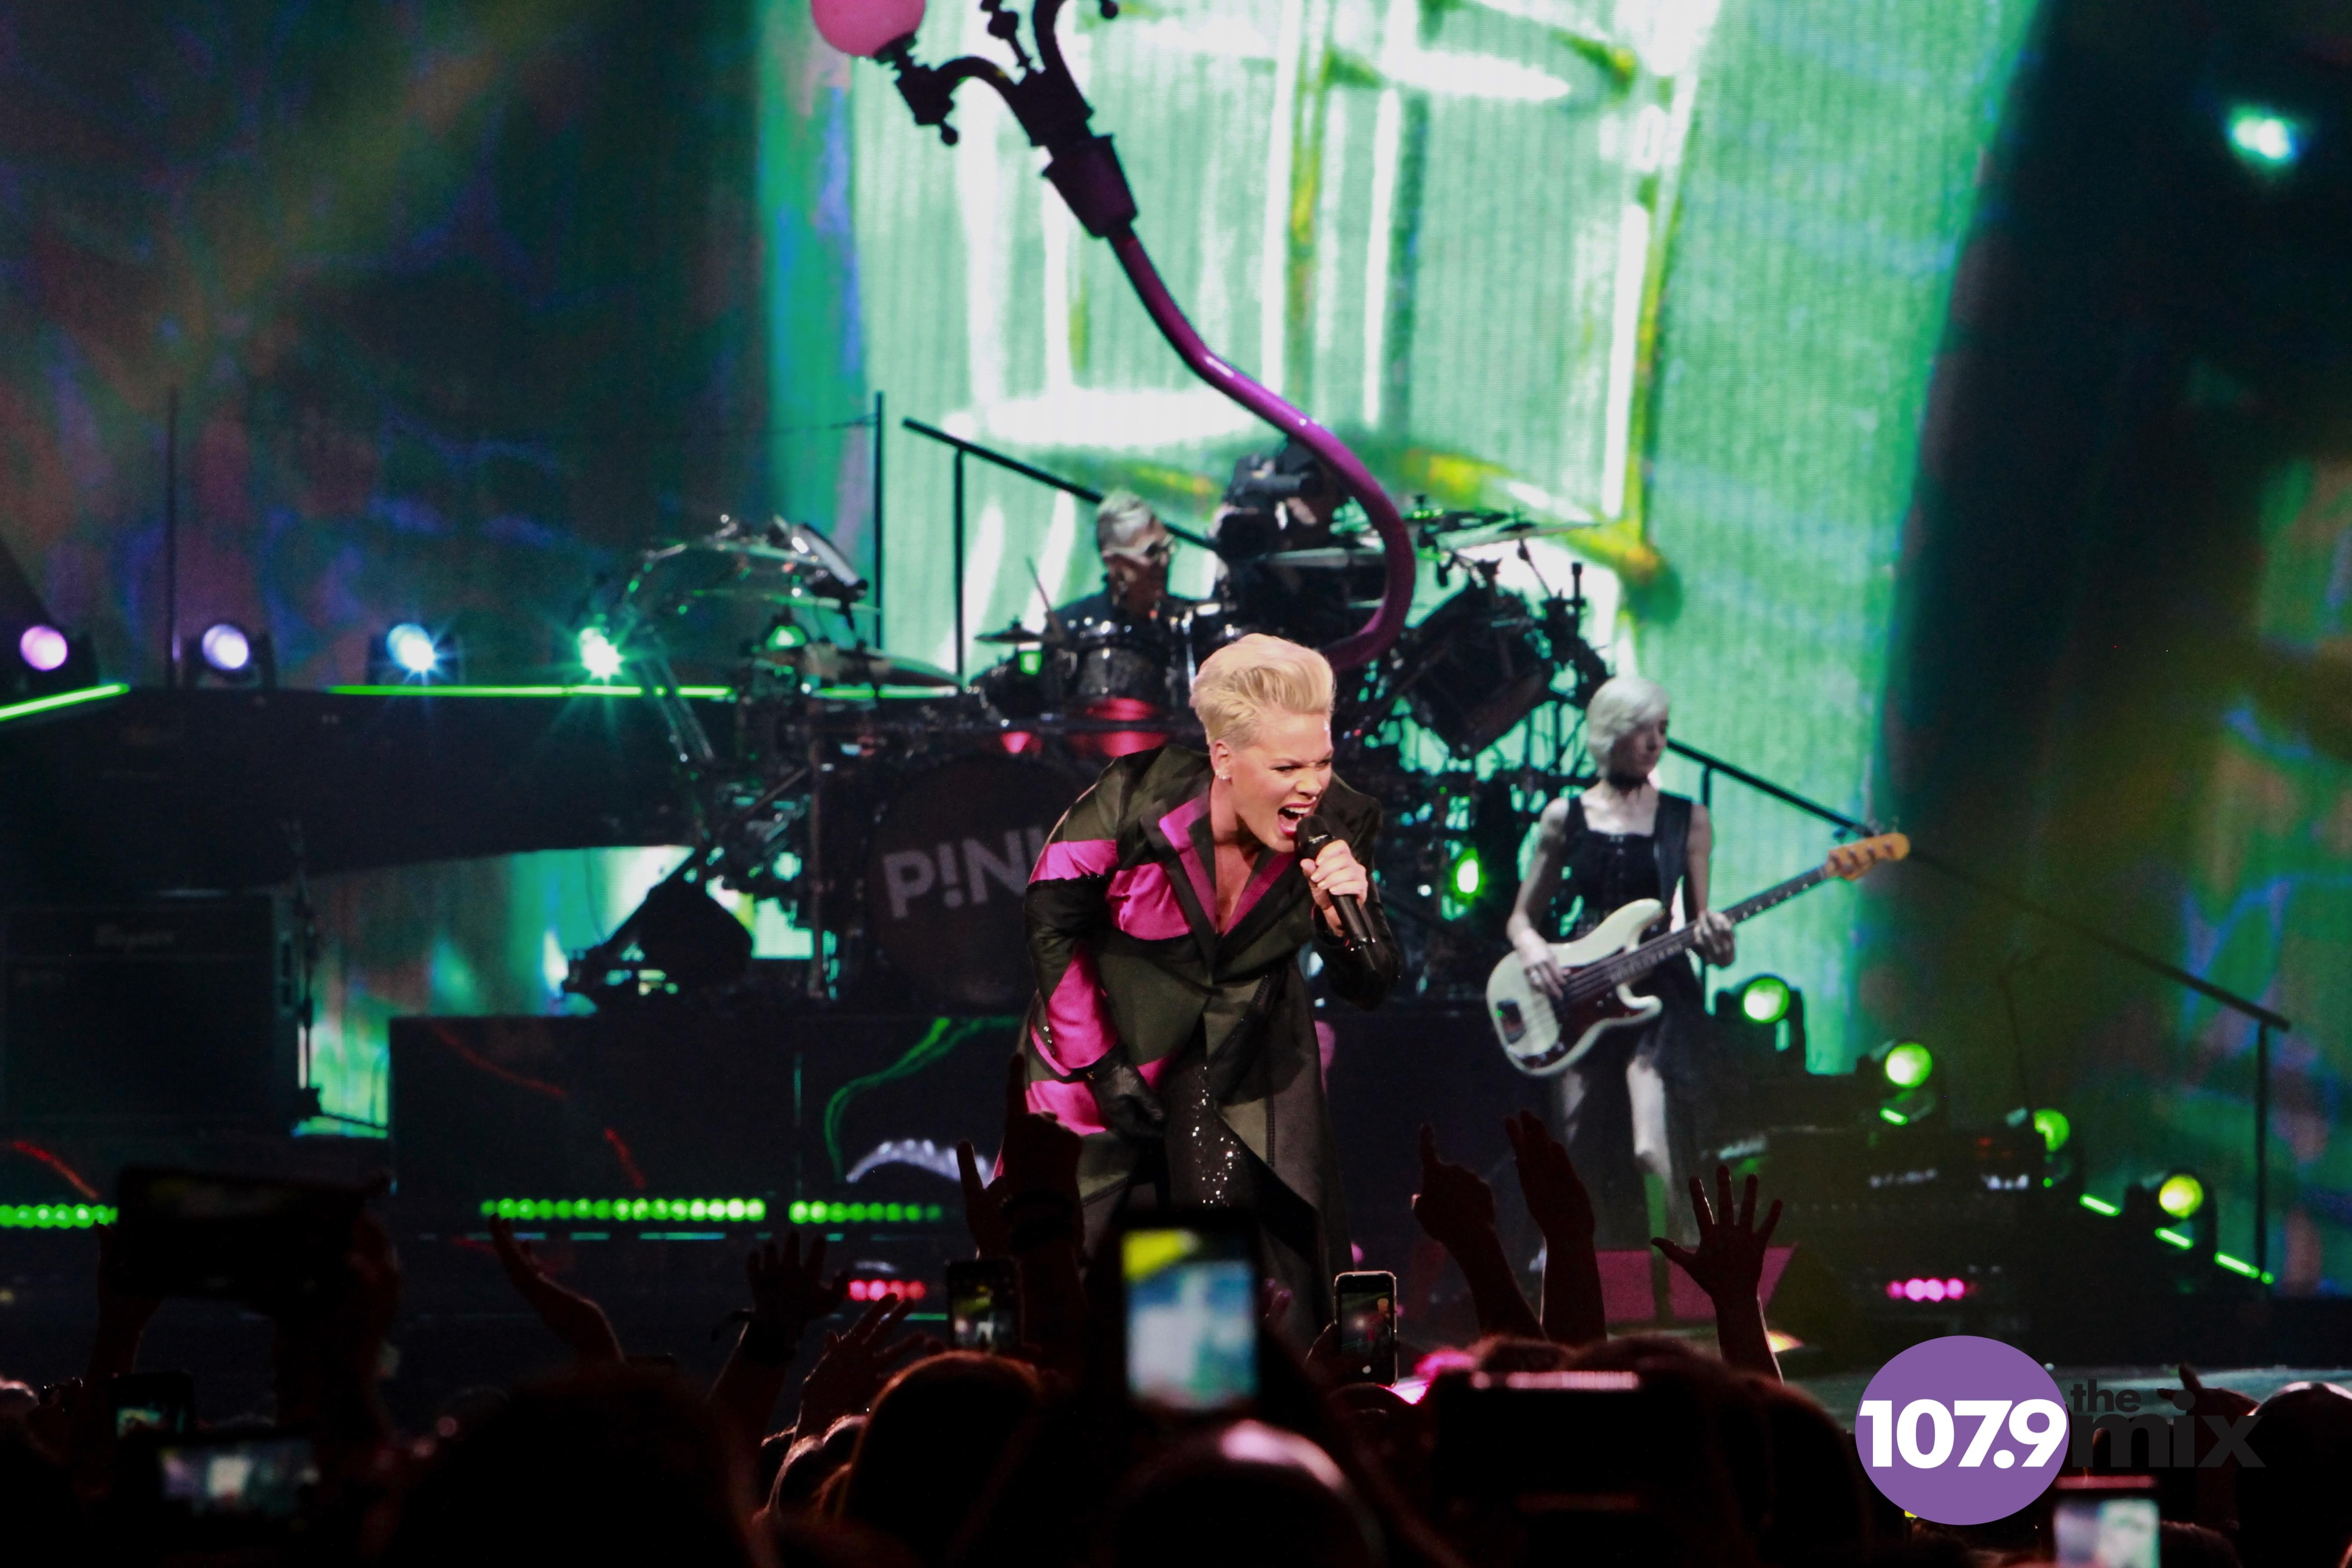 P!nk – 4/30/19 @ Bankers Life Fieldhouse